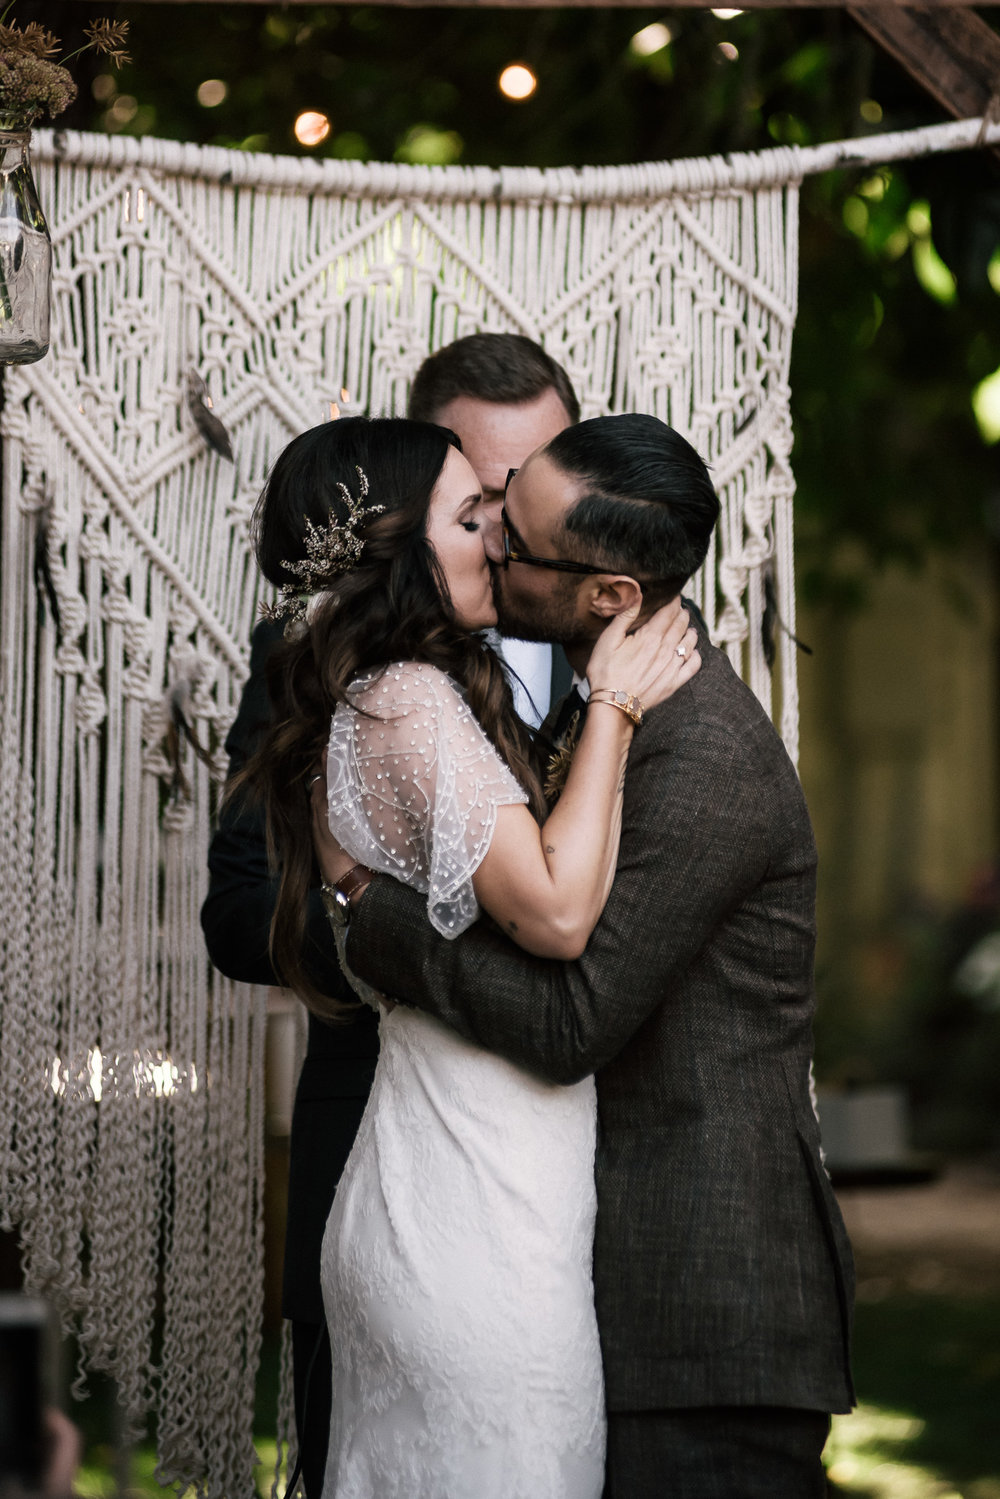 First kiss as husband and wife shot by wedding photographer at the charming St. George Hotel in Volcano California